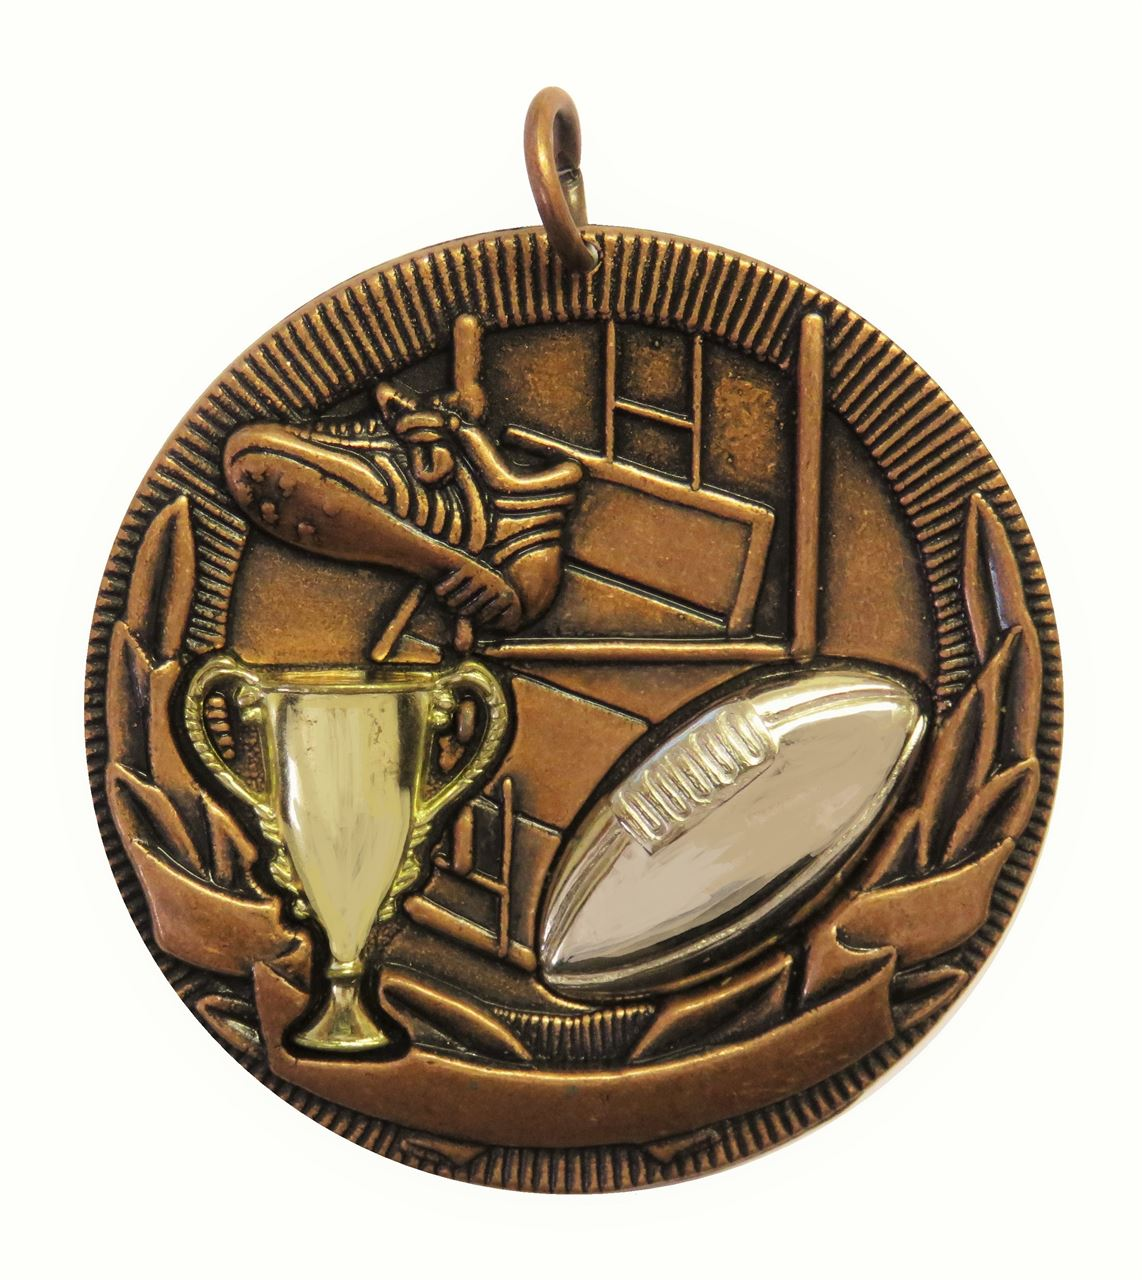 Copper Cup Design Rugby Medal (size: 50mm) - D3RG